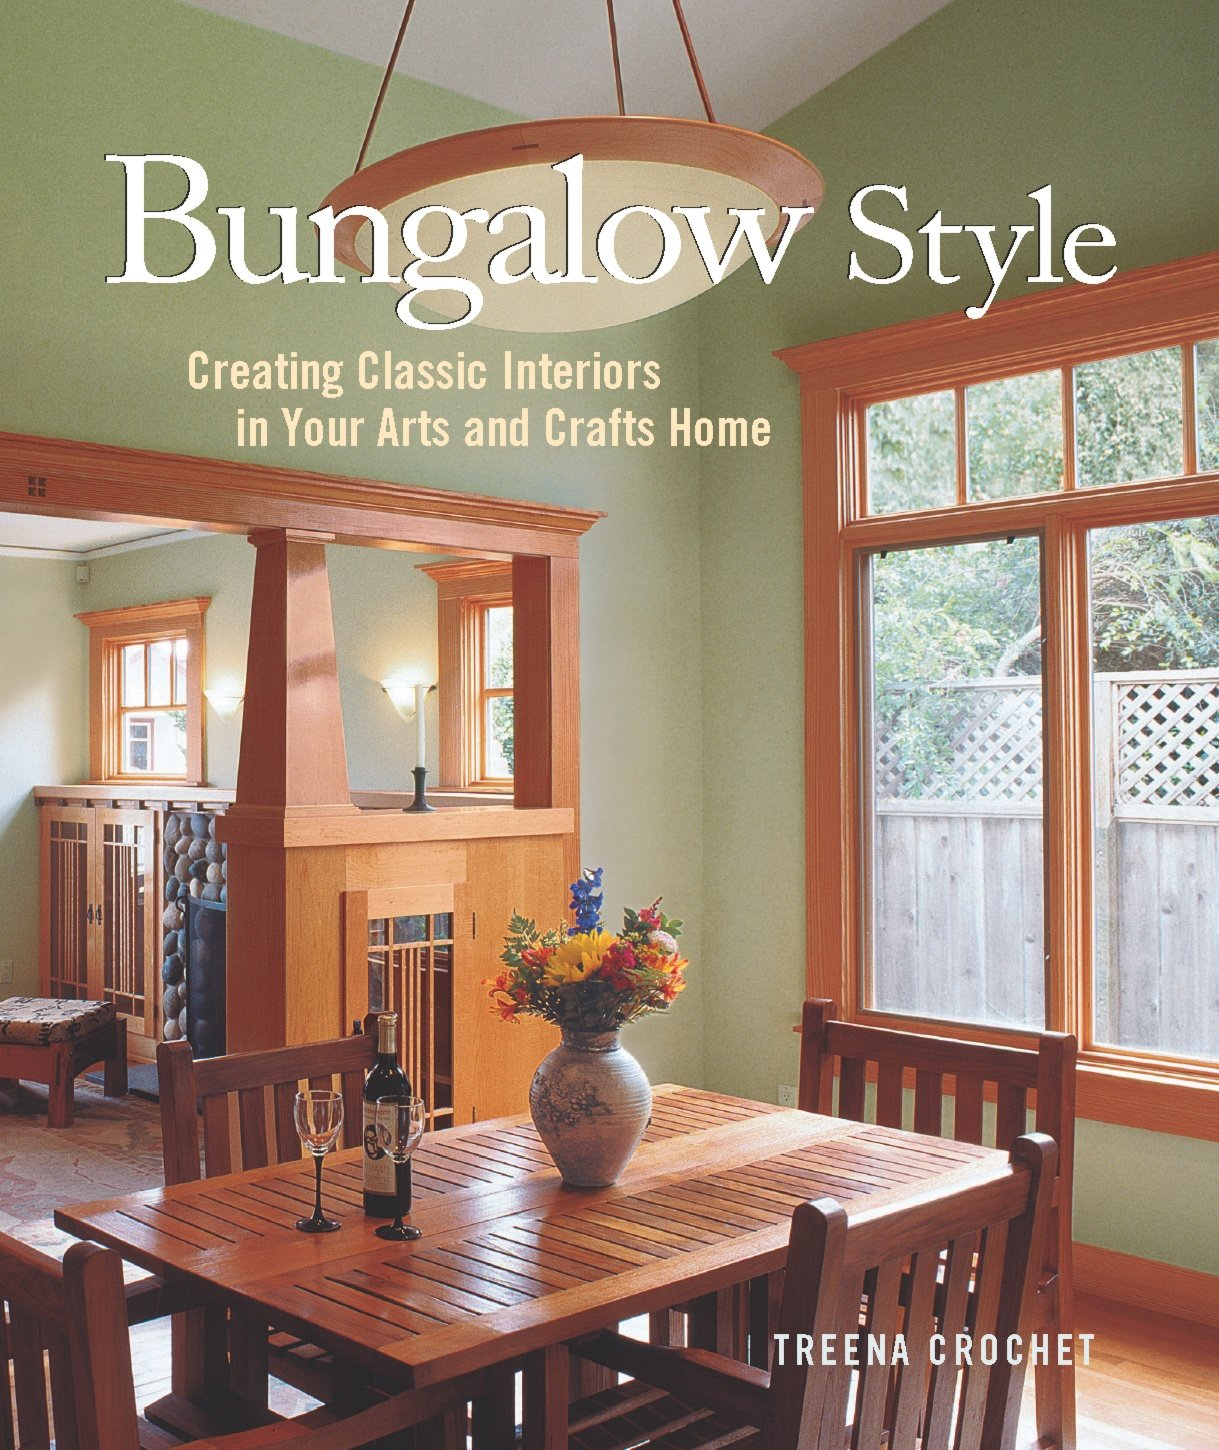 Arts and crafts interiors - Bungalow Style Creating Classic Interiors In Your Arts And Crafts Home Treena Crochet 9781561586233 Amazon Com Books